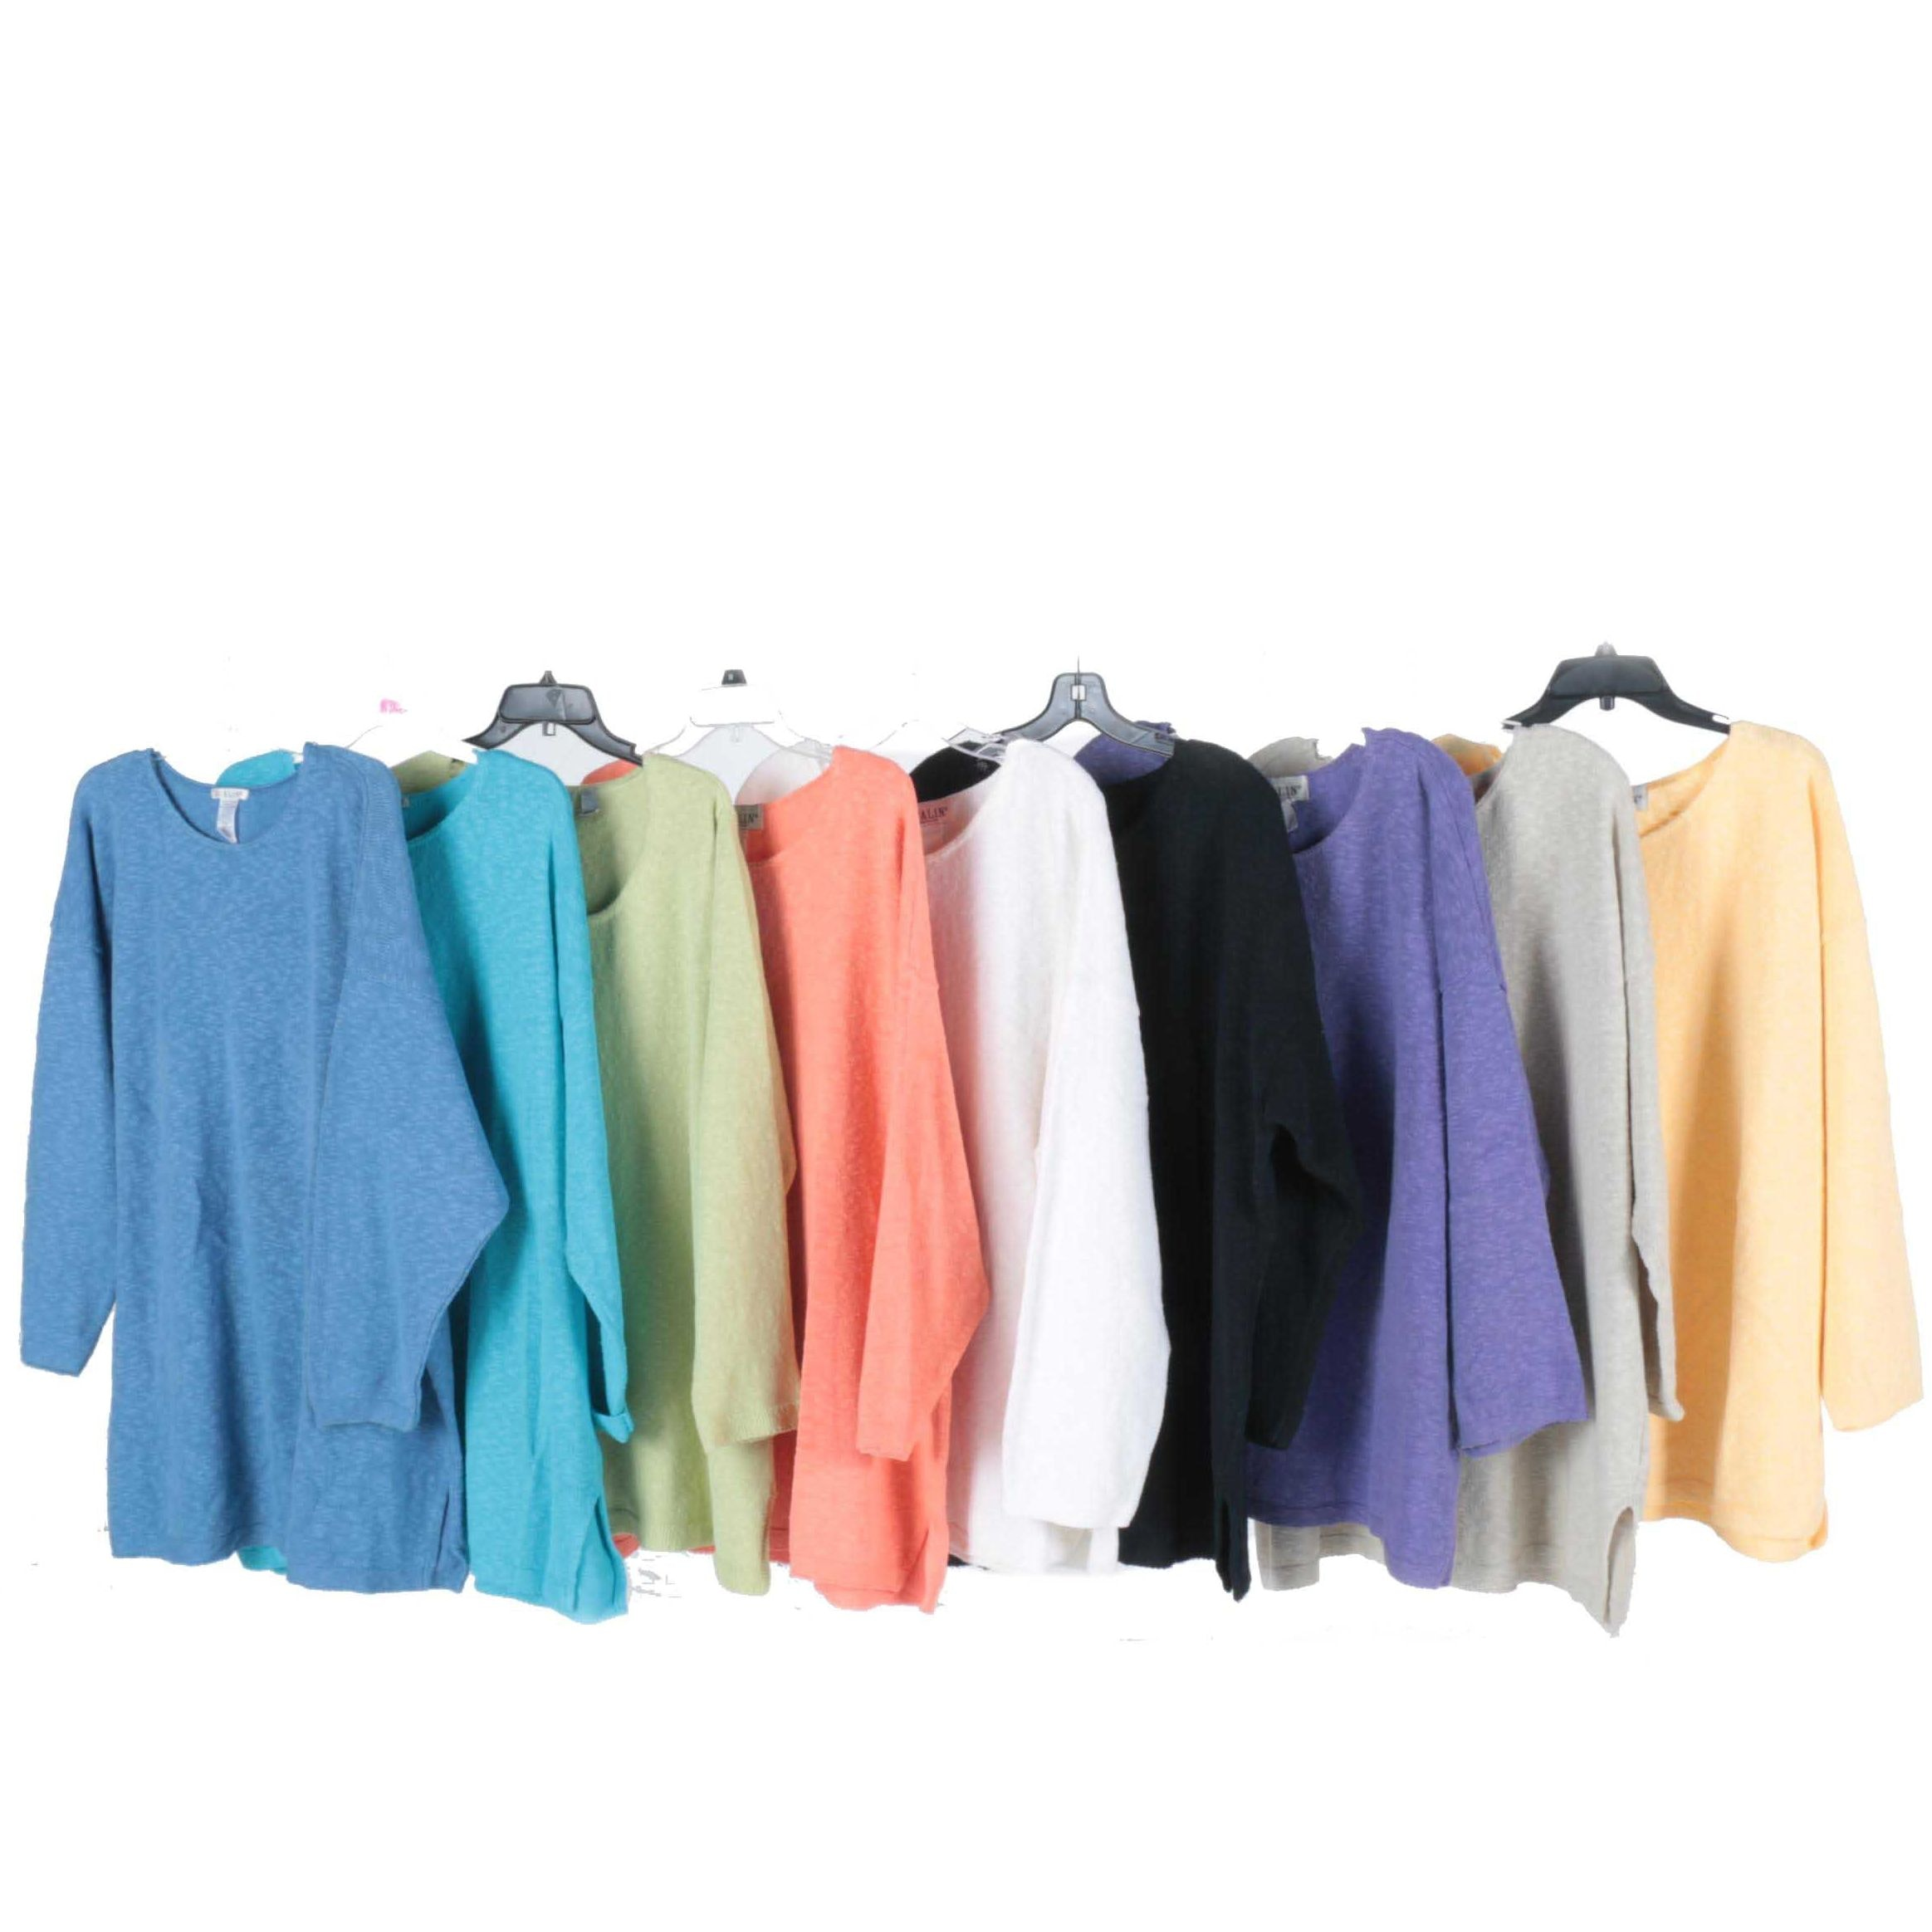 Assortment of Sweaters